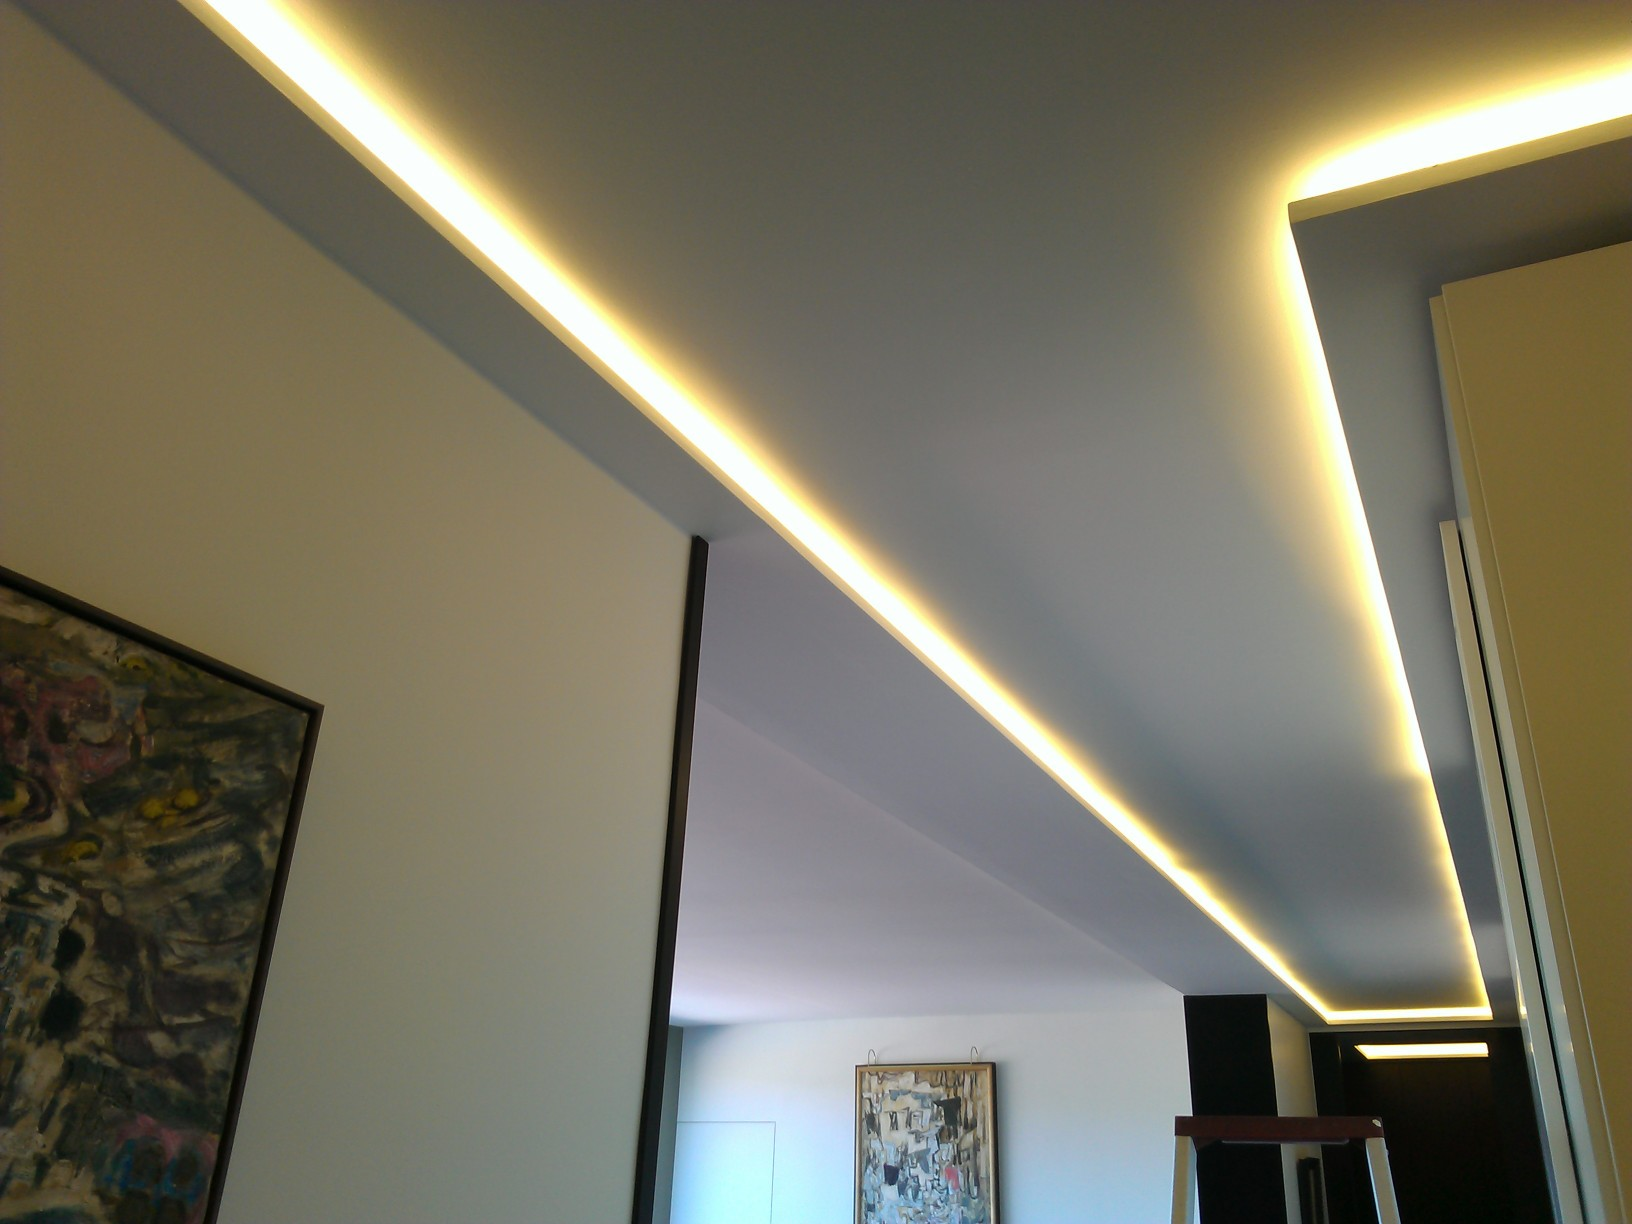 Eclairage led interieur plafond eclairage led plafonds for Eclairage interieur led